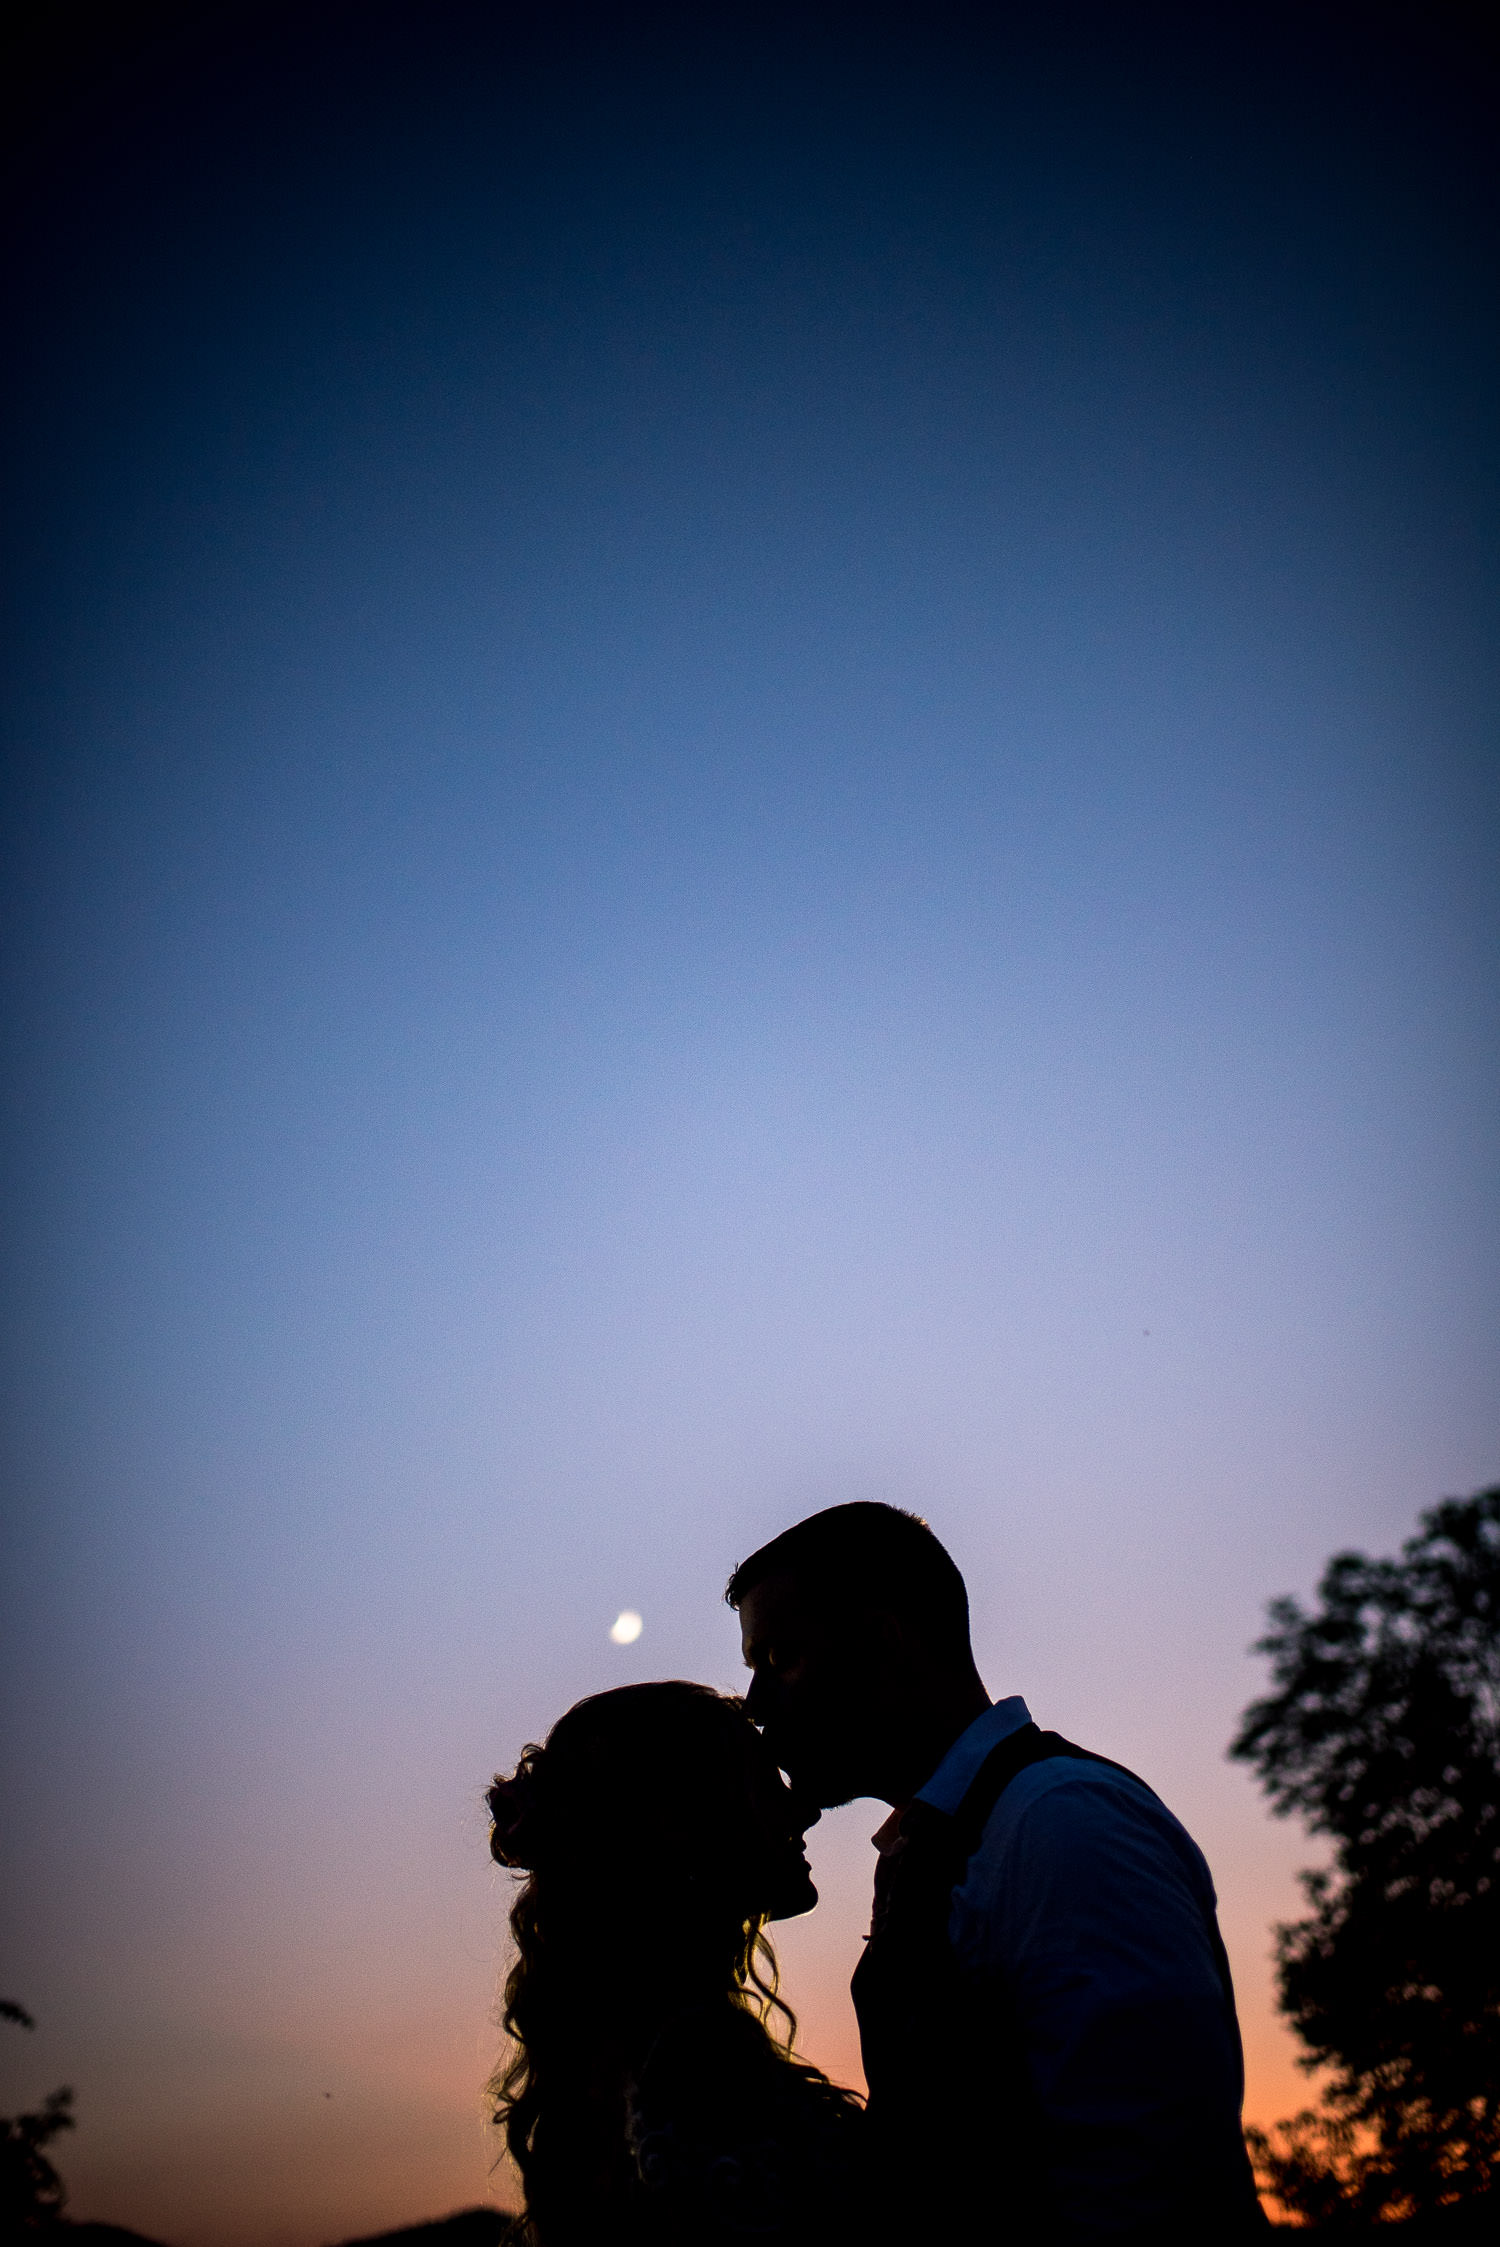 night portrait of bride and groom with moon in sky